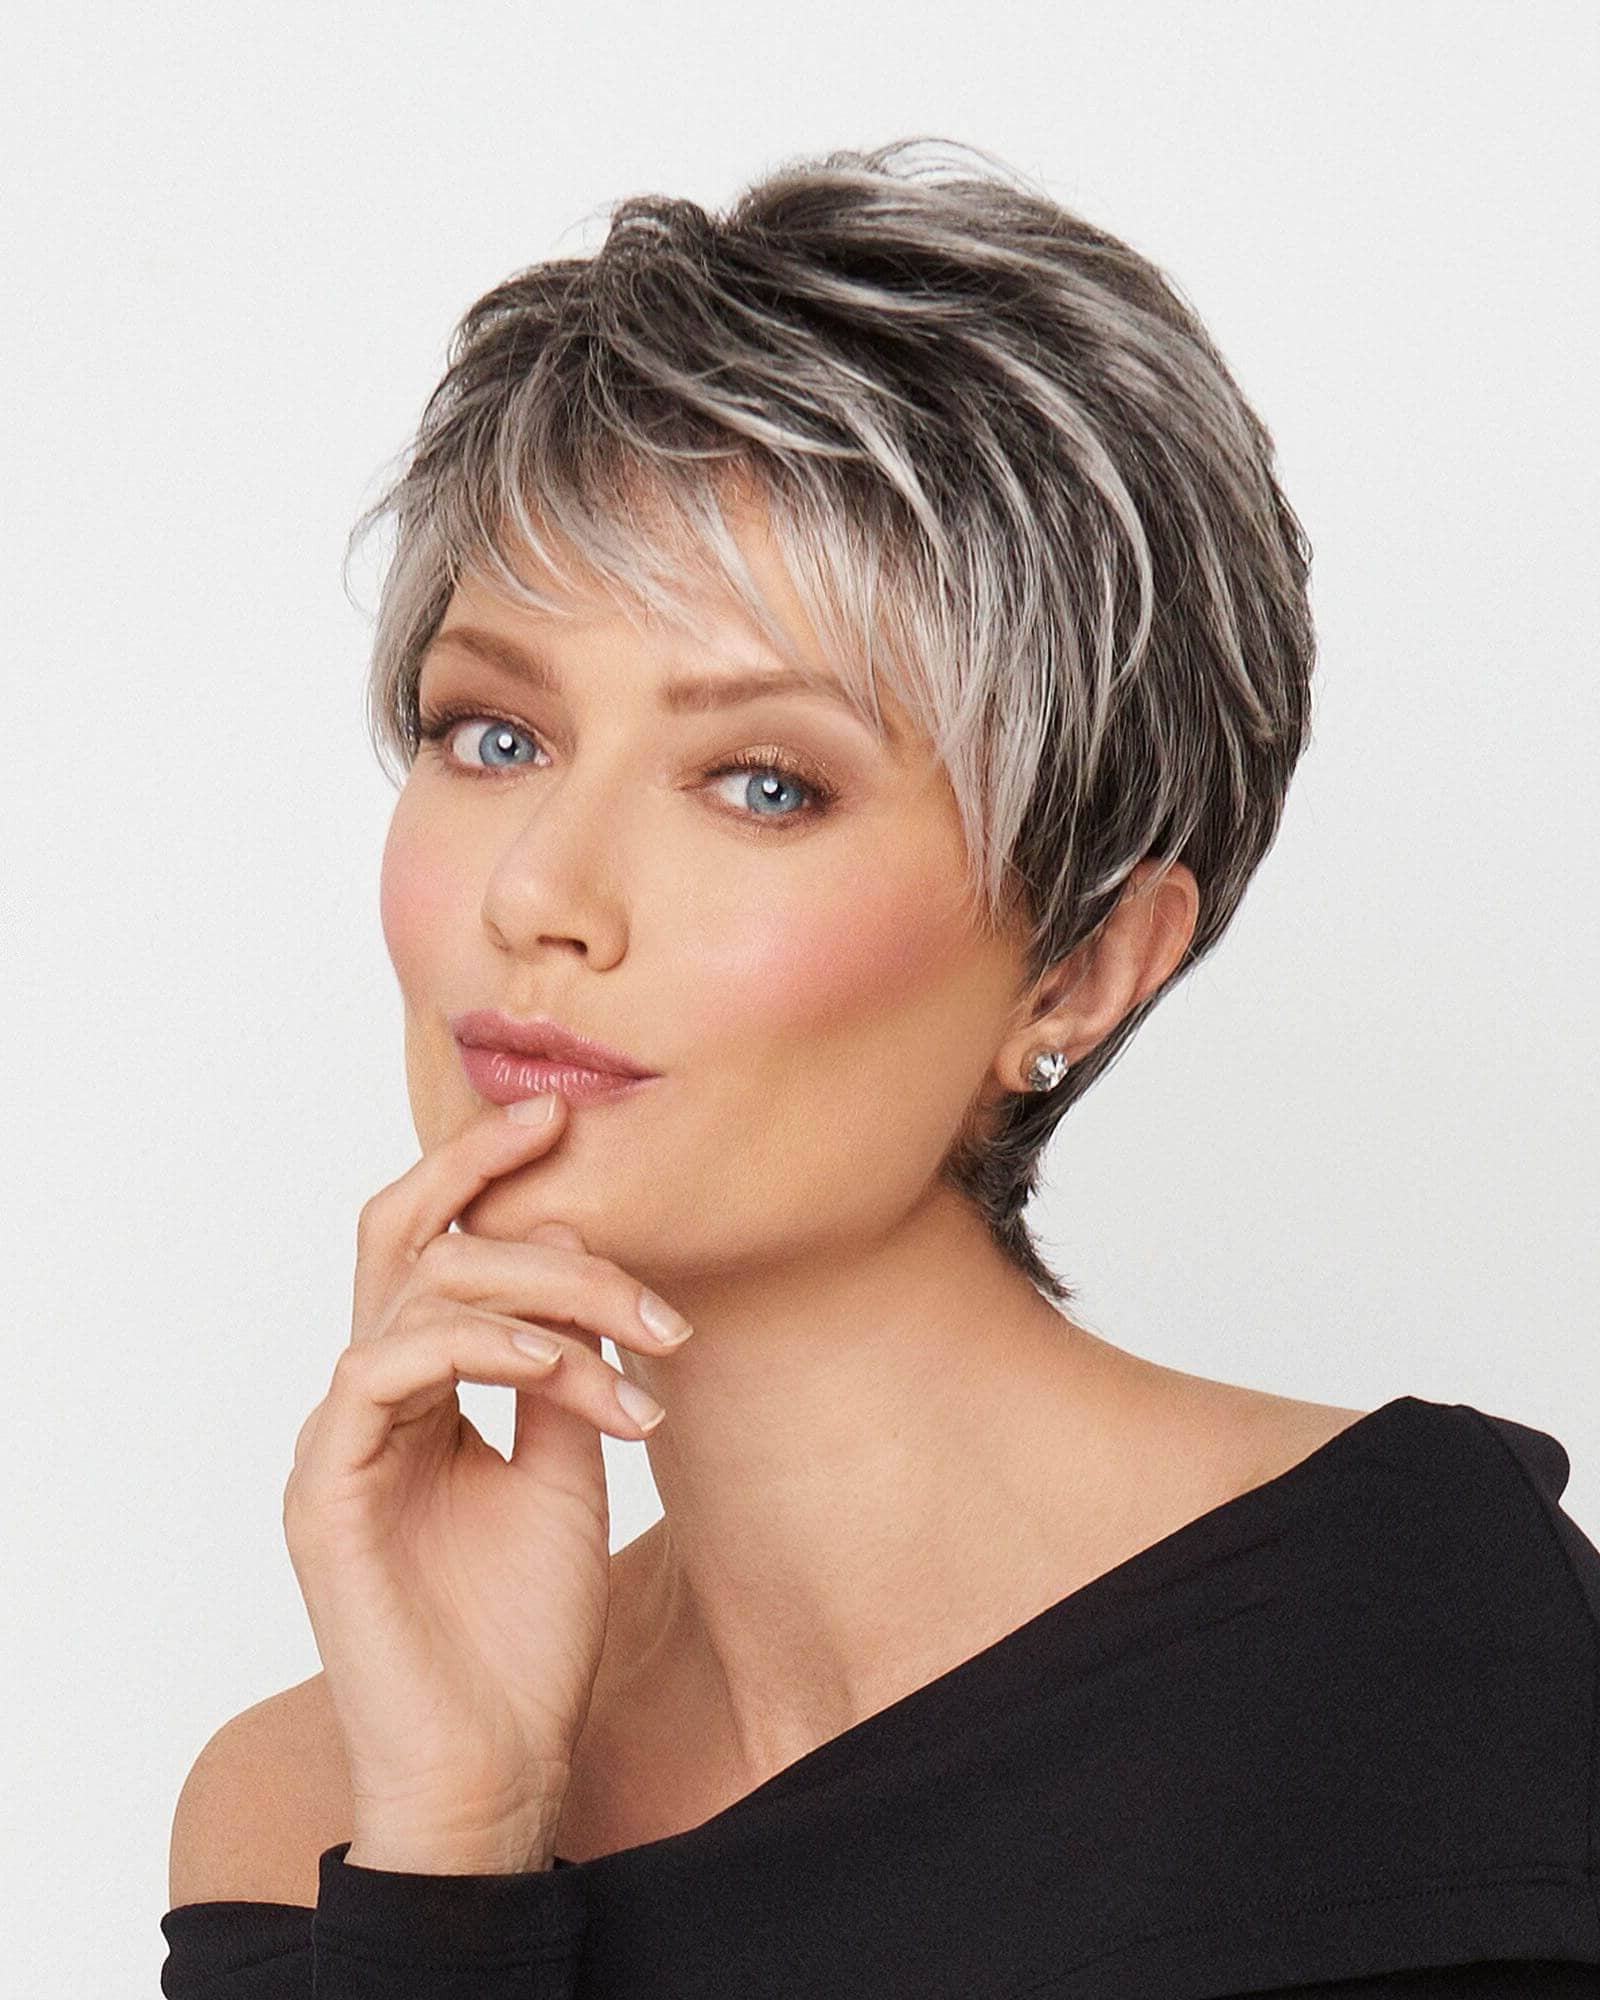 50 Pixie Haircuts You'll See Trending In 2018 Regarding Layered Pixie Hairstyles With Textured Bangs (View 14 of 20)